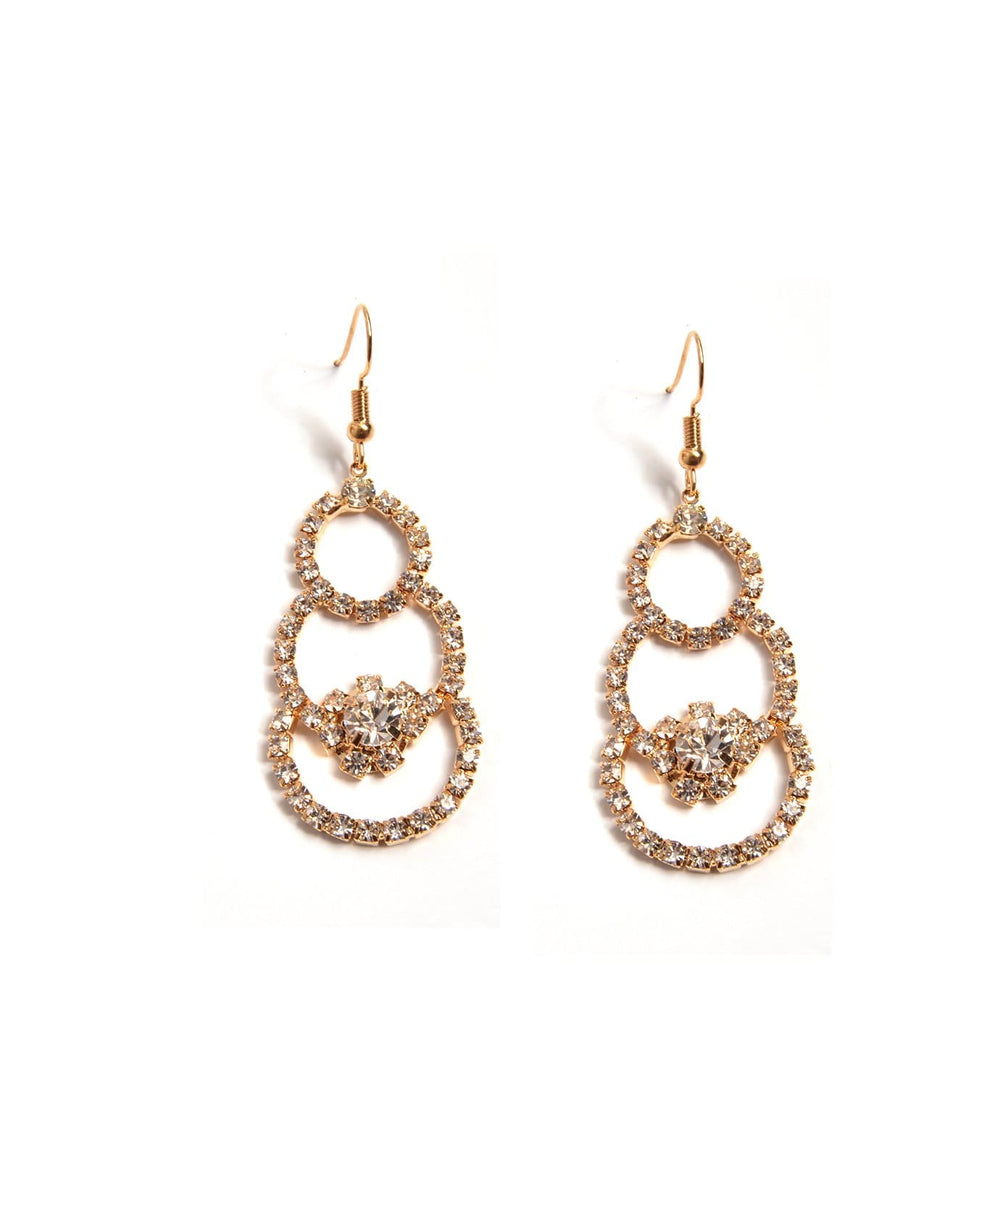 Triple Circle Elegant Earrings